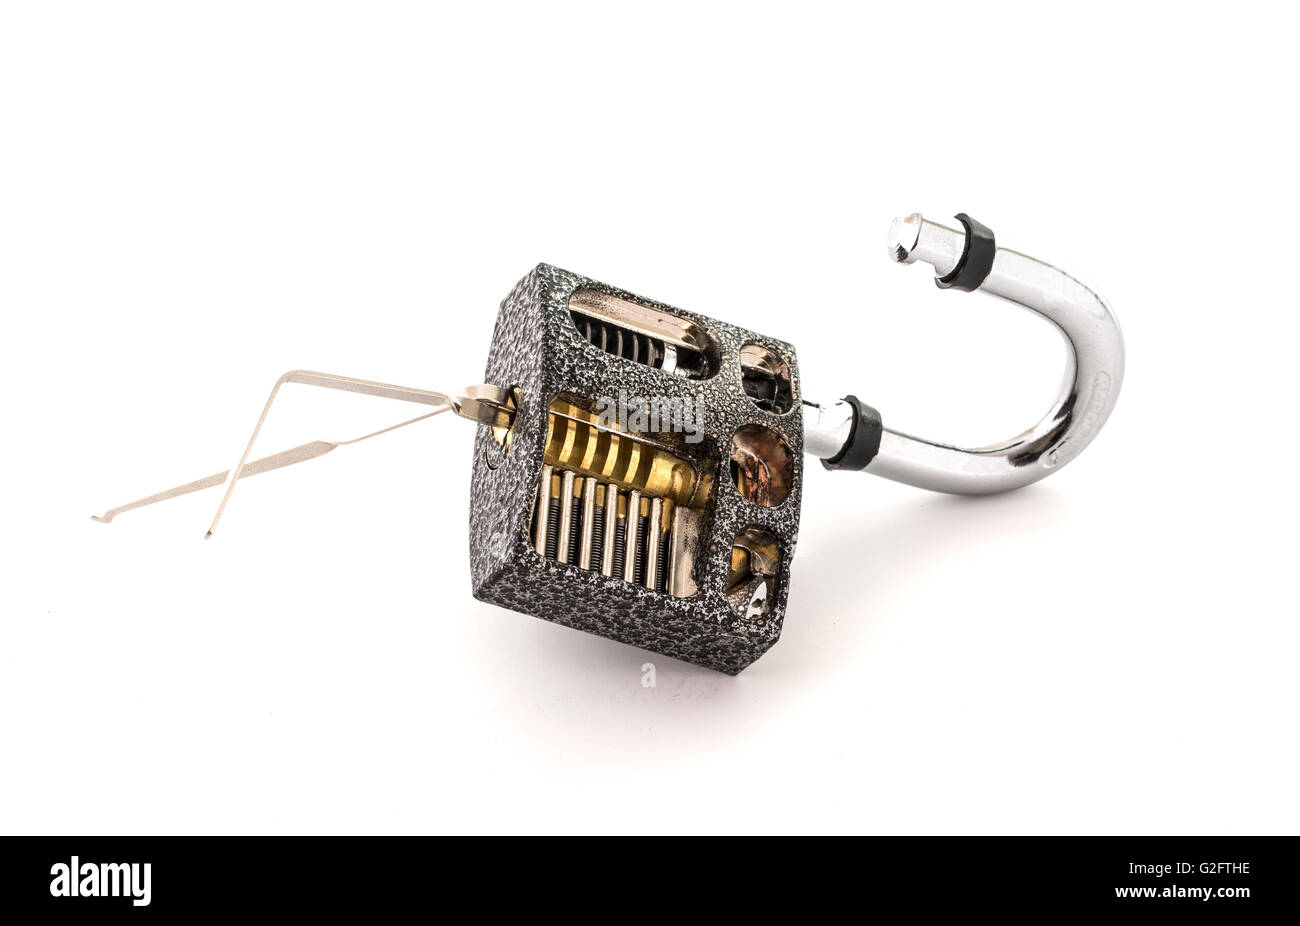 Cut Away Padlock and lock picks showing how a Padlock can be picked on a White Background - Stock Image